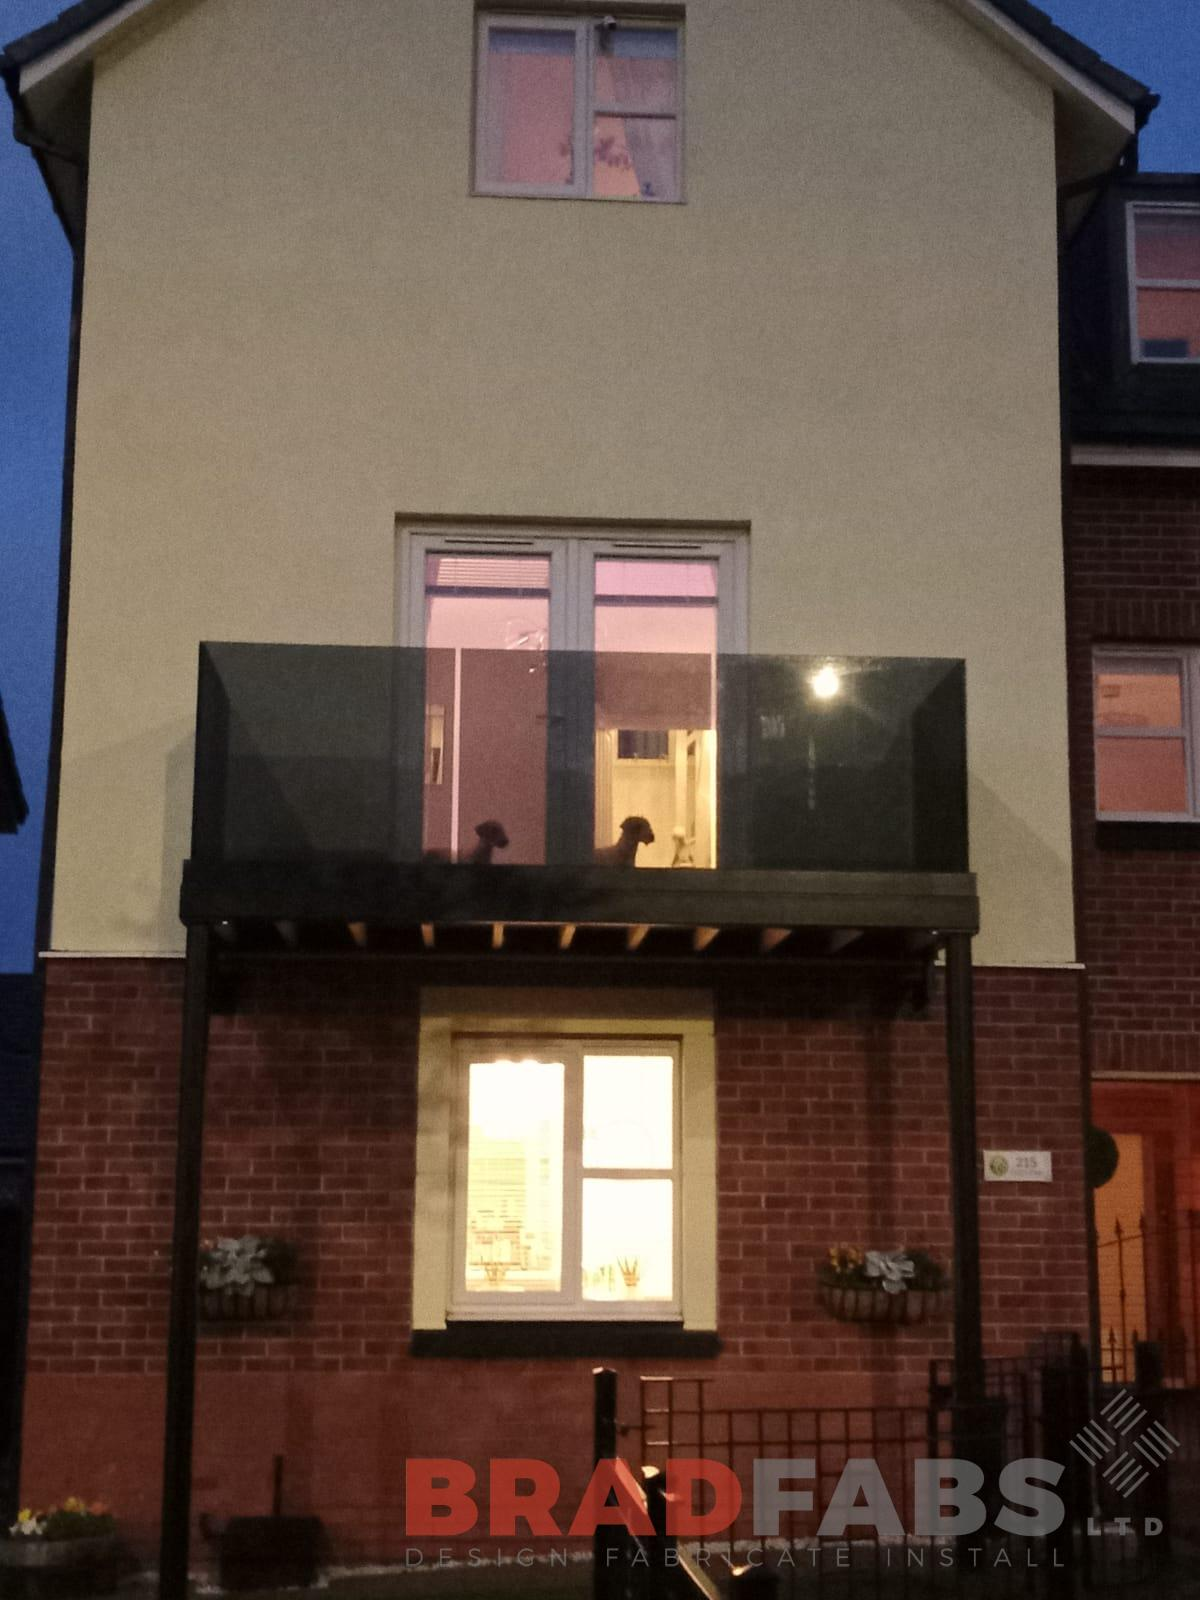 Bradfabs, tinted infinity glass channel system balustrade, bespoke balcony, steel balcony